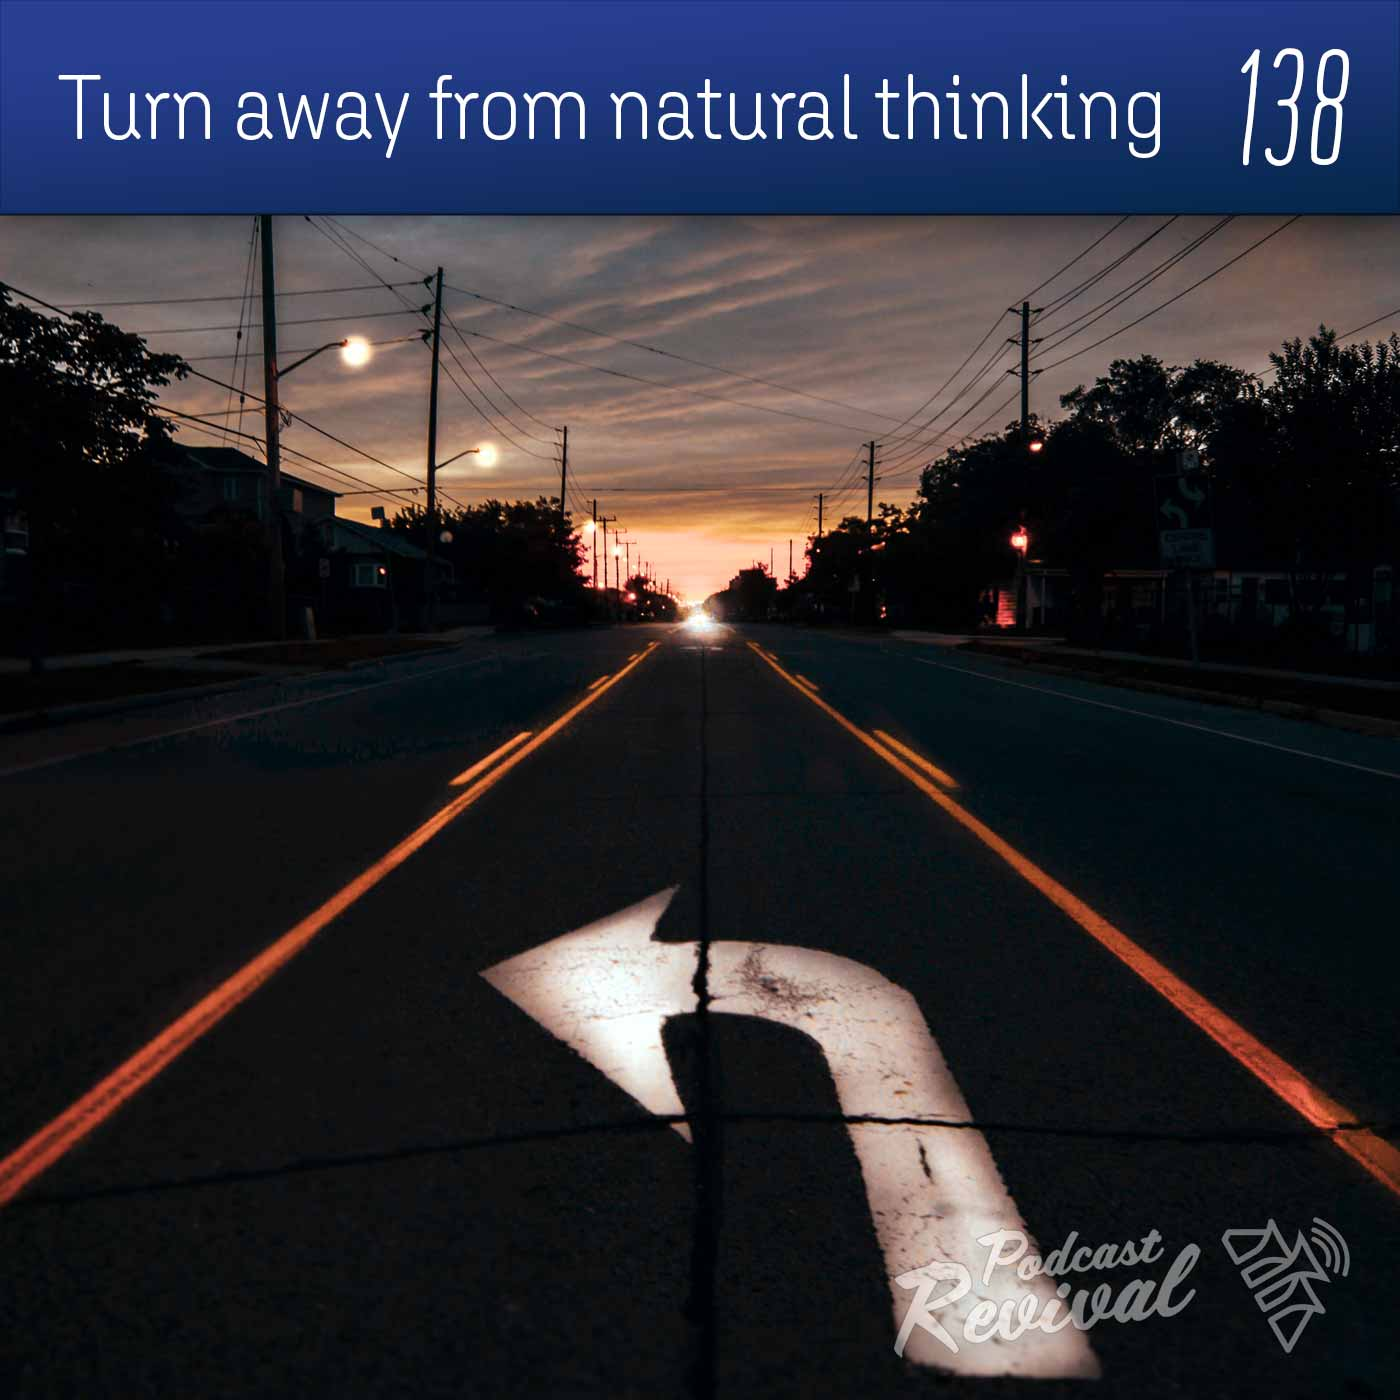 Turn away from natural thinking